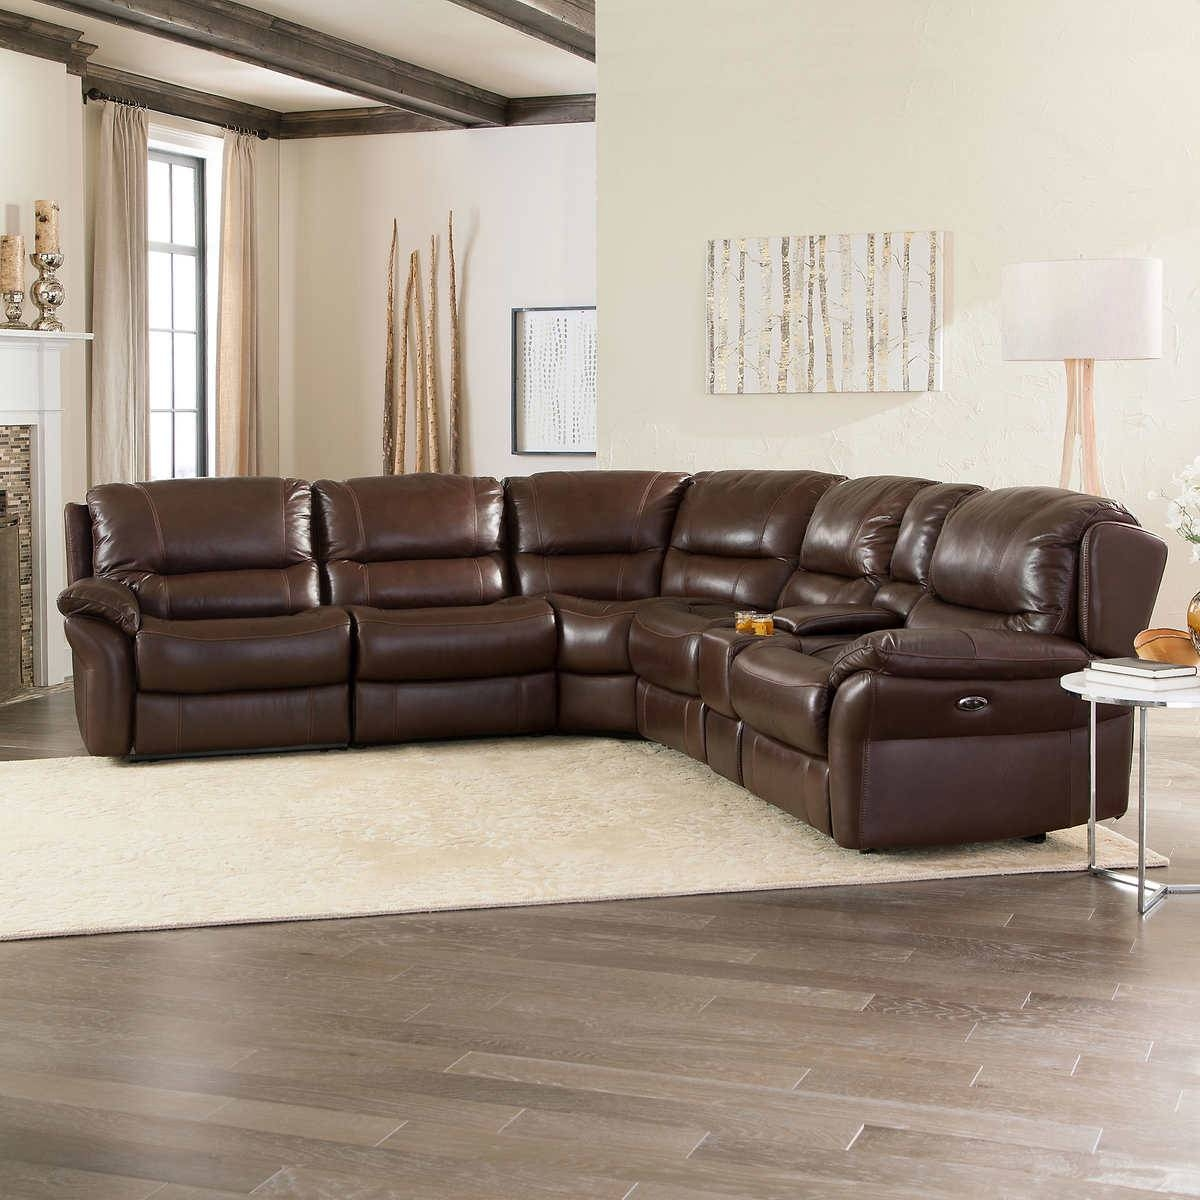 Leather Sectional Sofa With Recliner | Demand Sofas Set for 6 Piece Leather Sectional Sofa (Image 20 of 30)